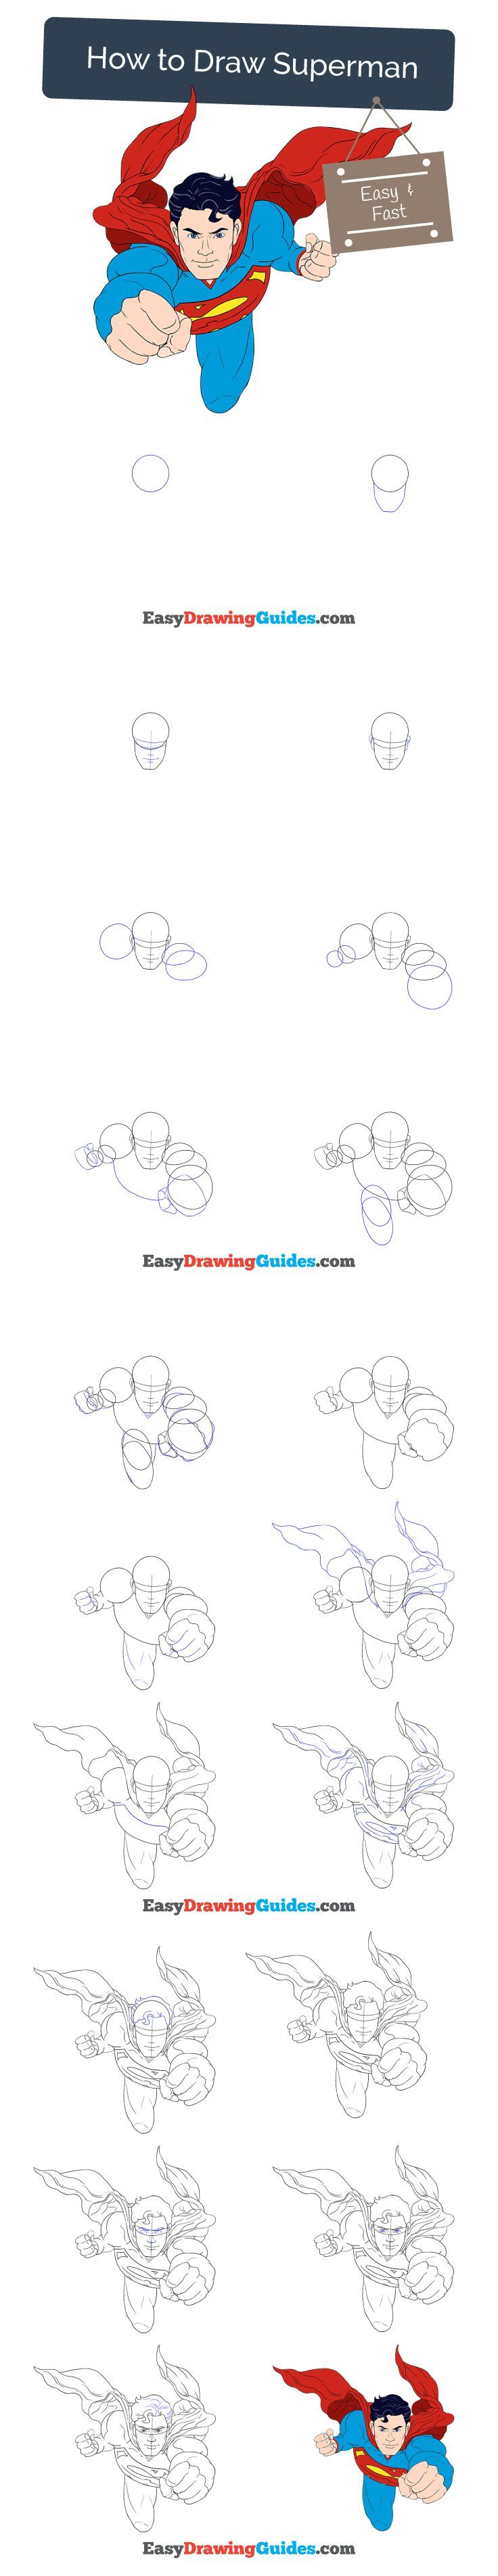 343 Best How To Draw Cartoon And Comics Characters Images On